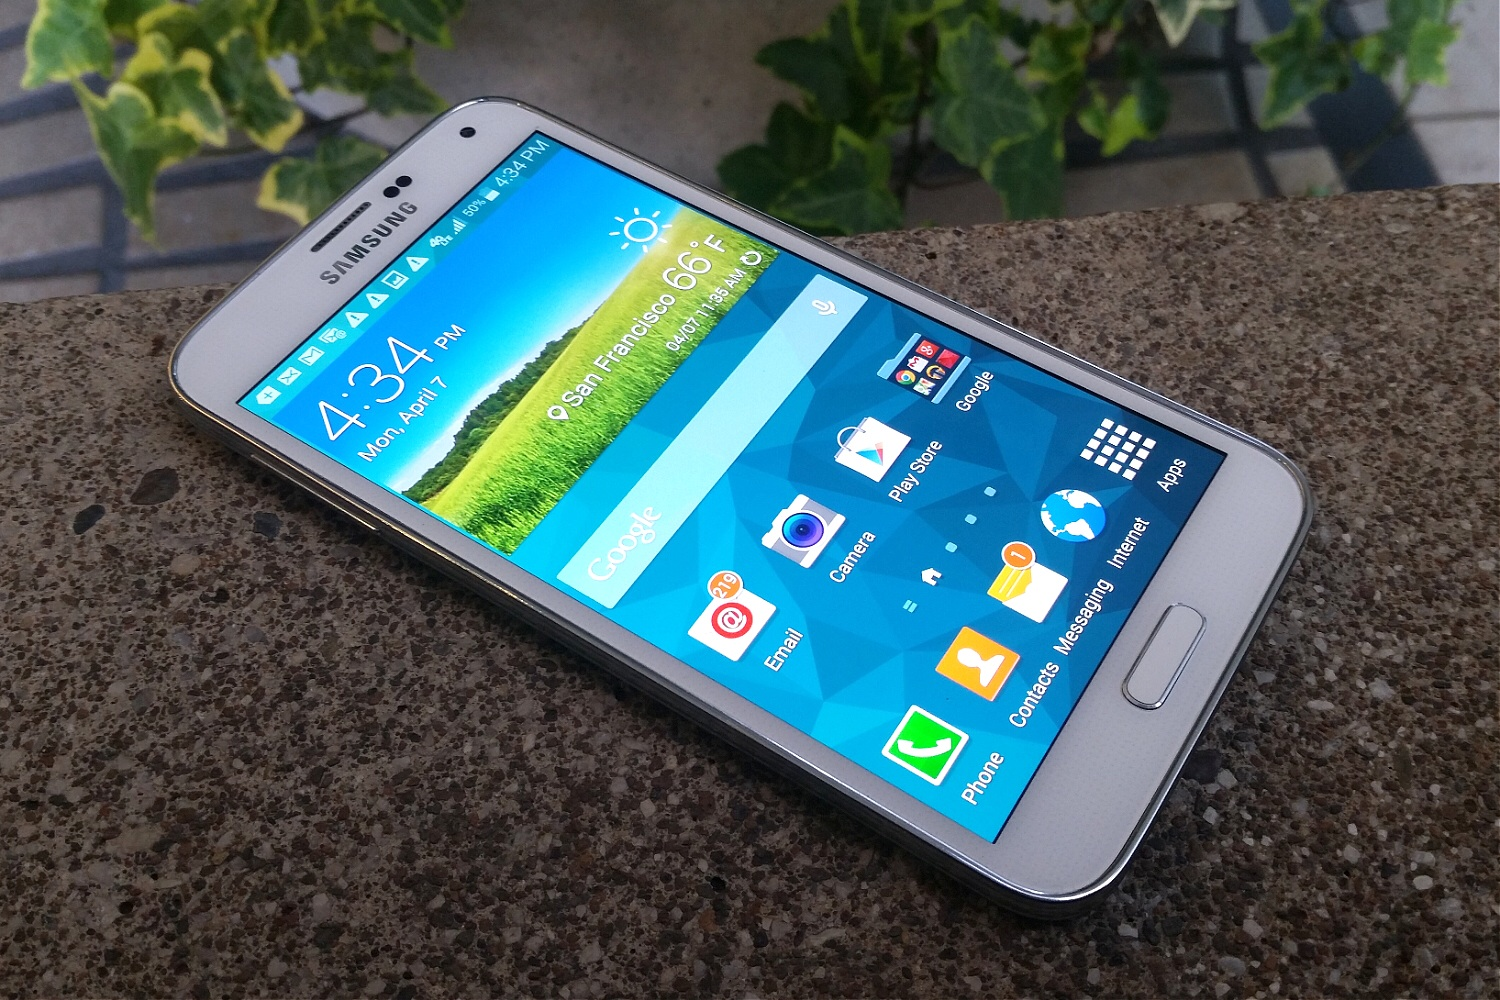 Samsung's Galaxy S5 smartphone (shown in a photo taken with another Galaxy S5)